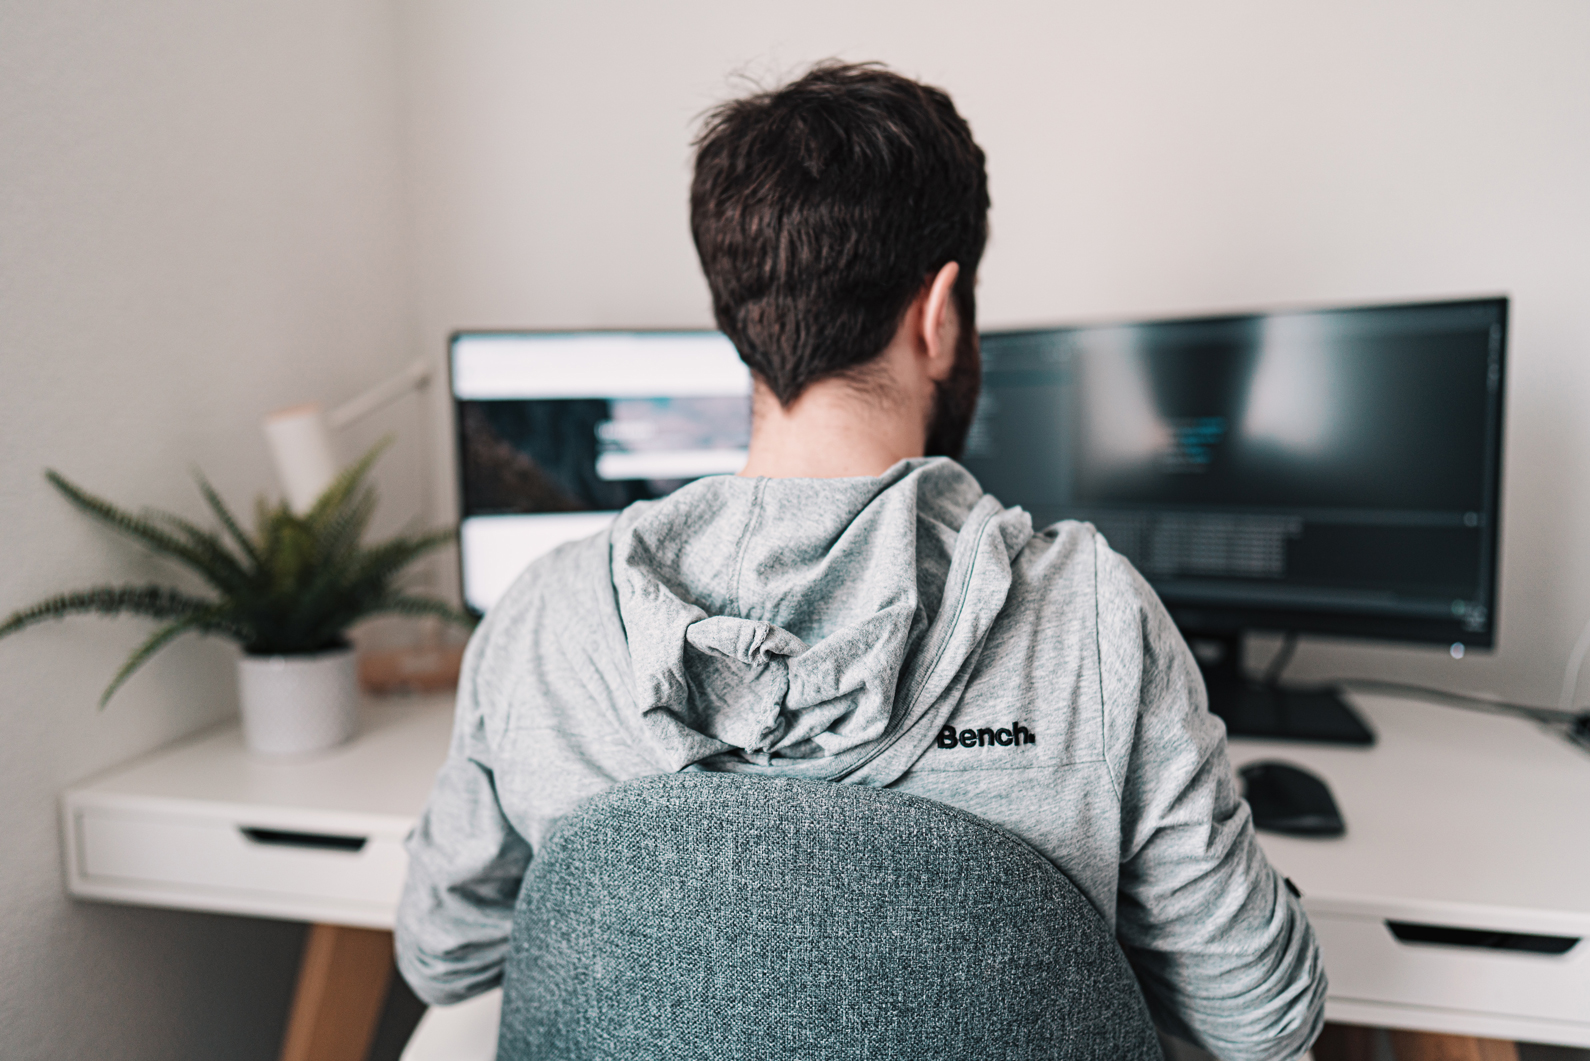 Supporting employees working from home